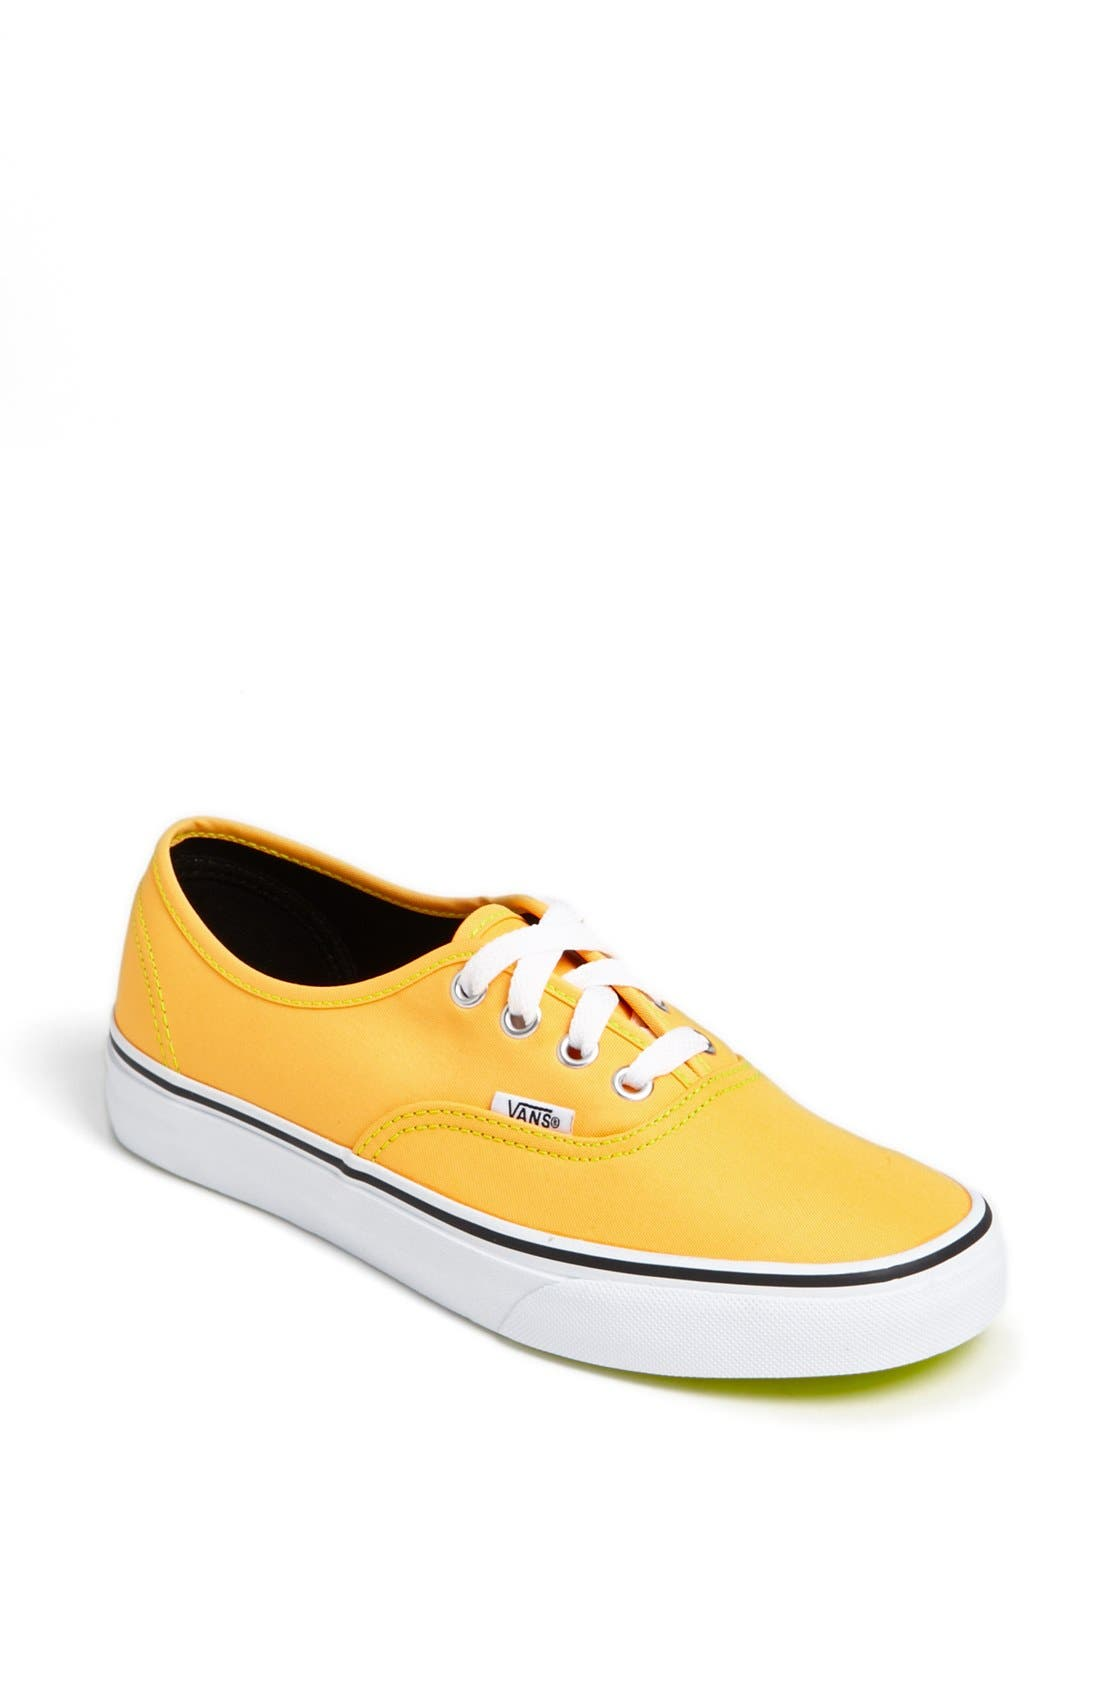 Main Image - Vans 'Authentic' Neon Sneaker (Women)